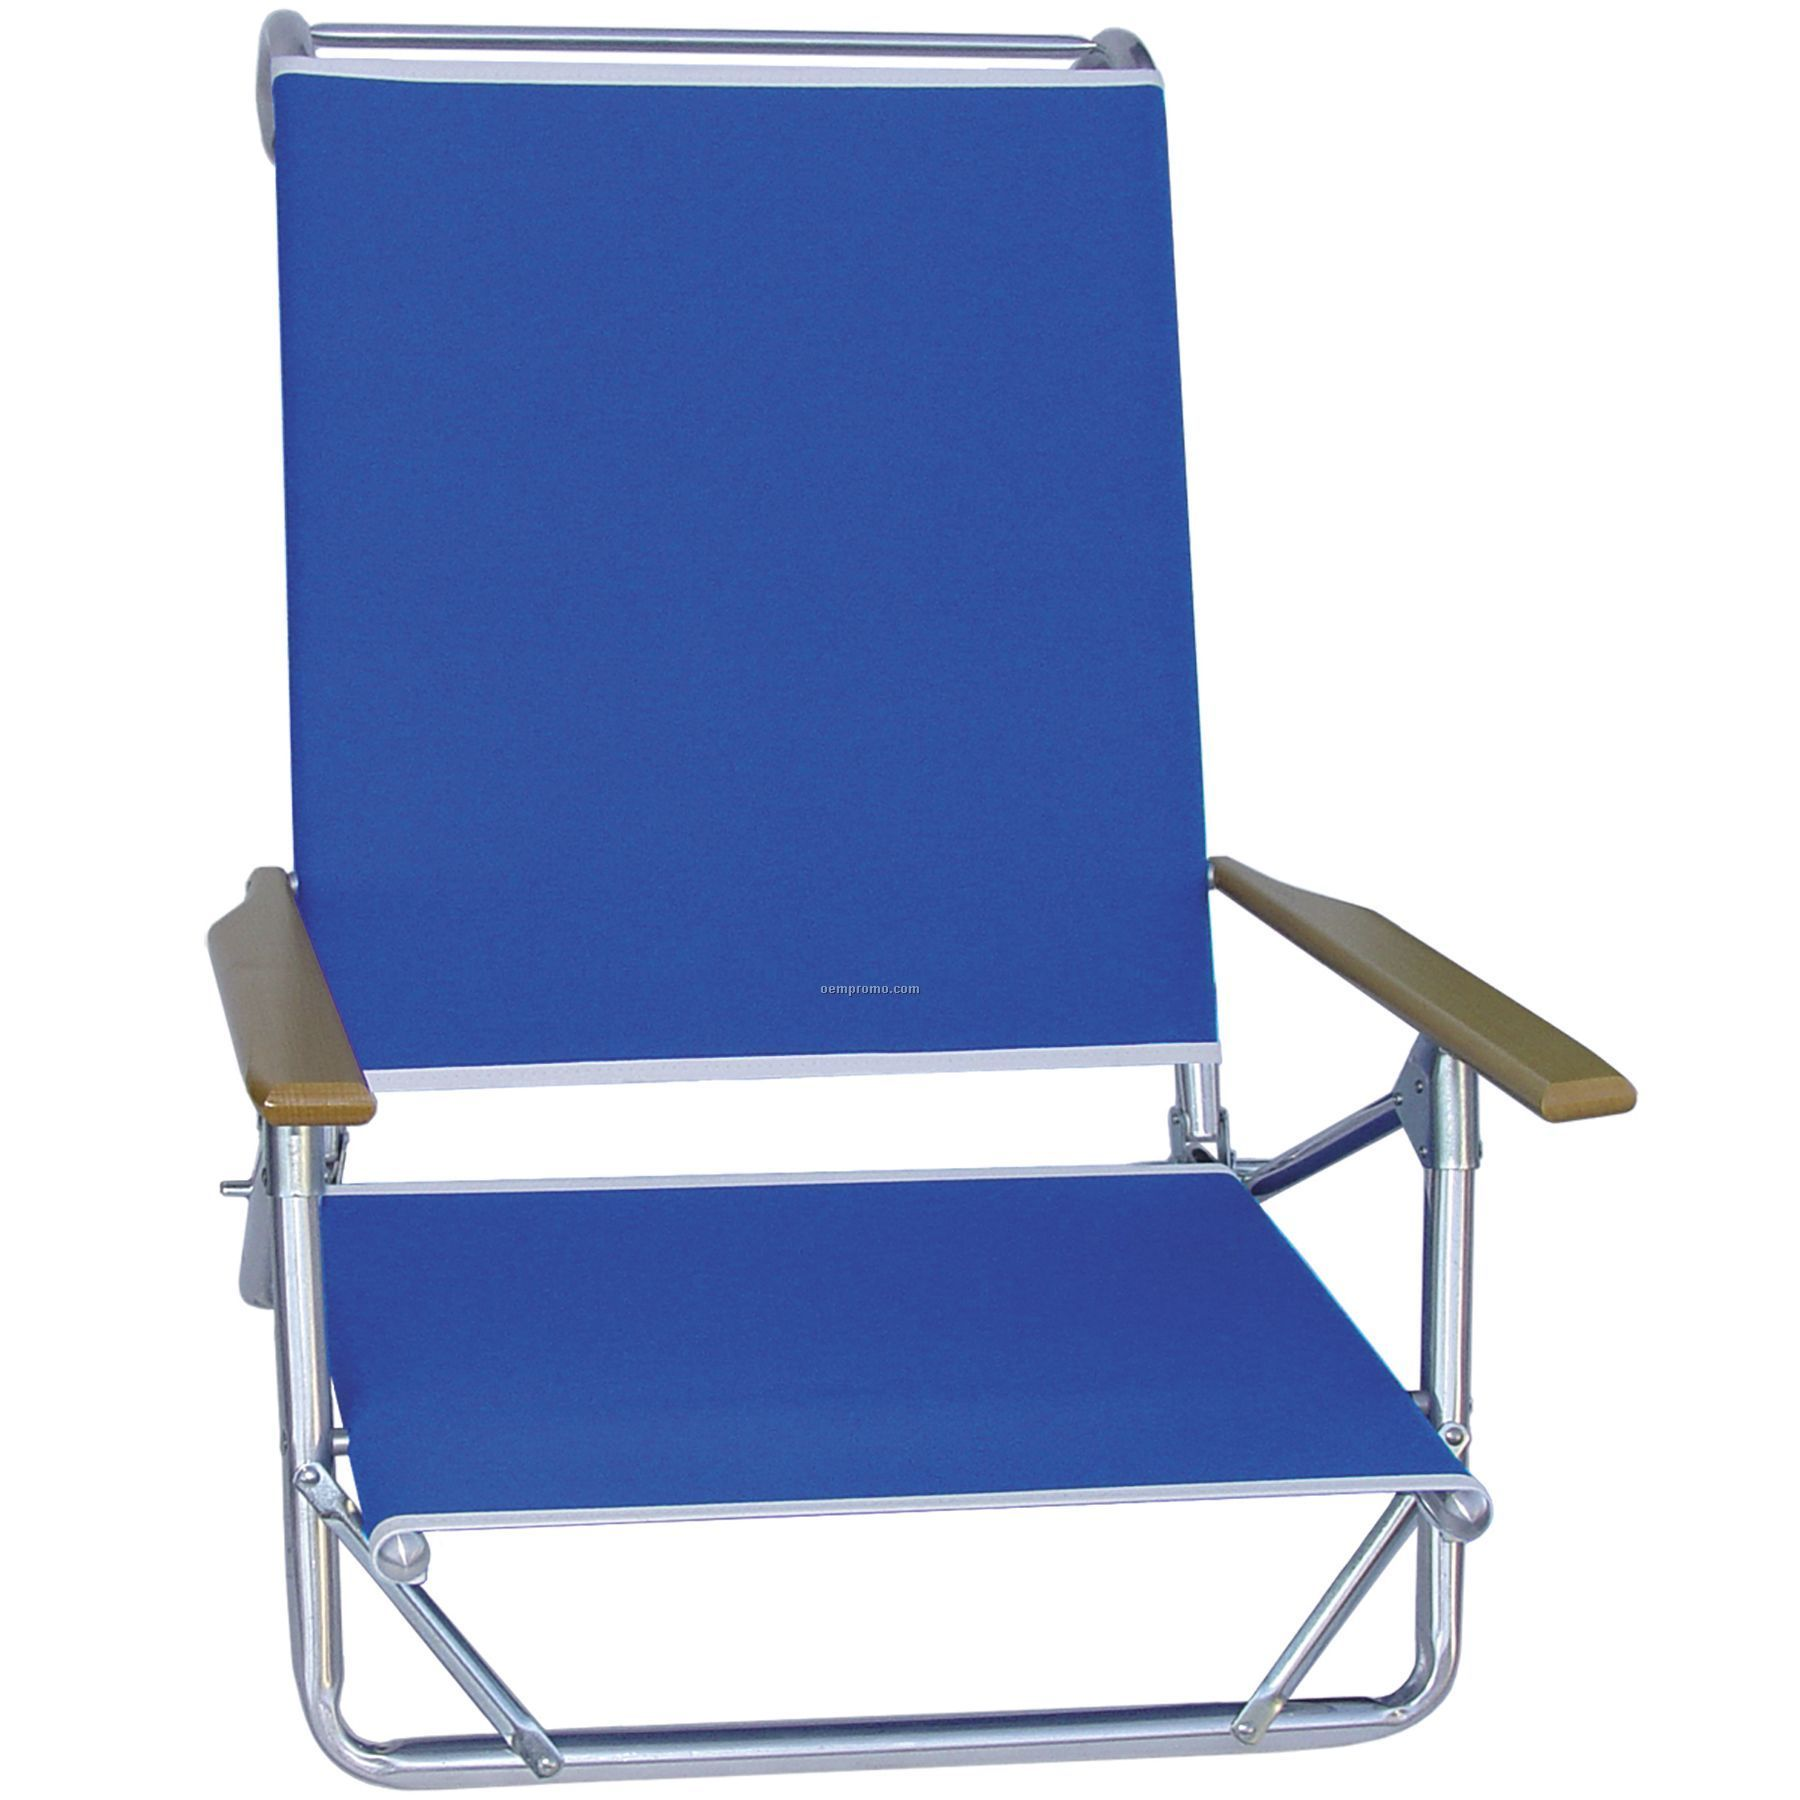 Us Made Deluxe 4 Position High Back Aluminum Beach Recliner W/ Wood Arms